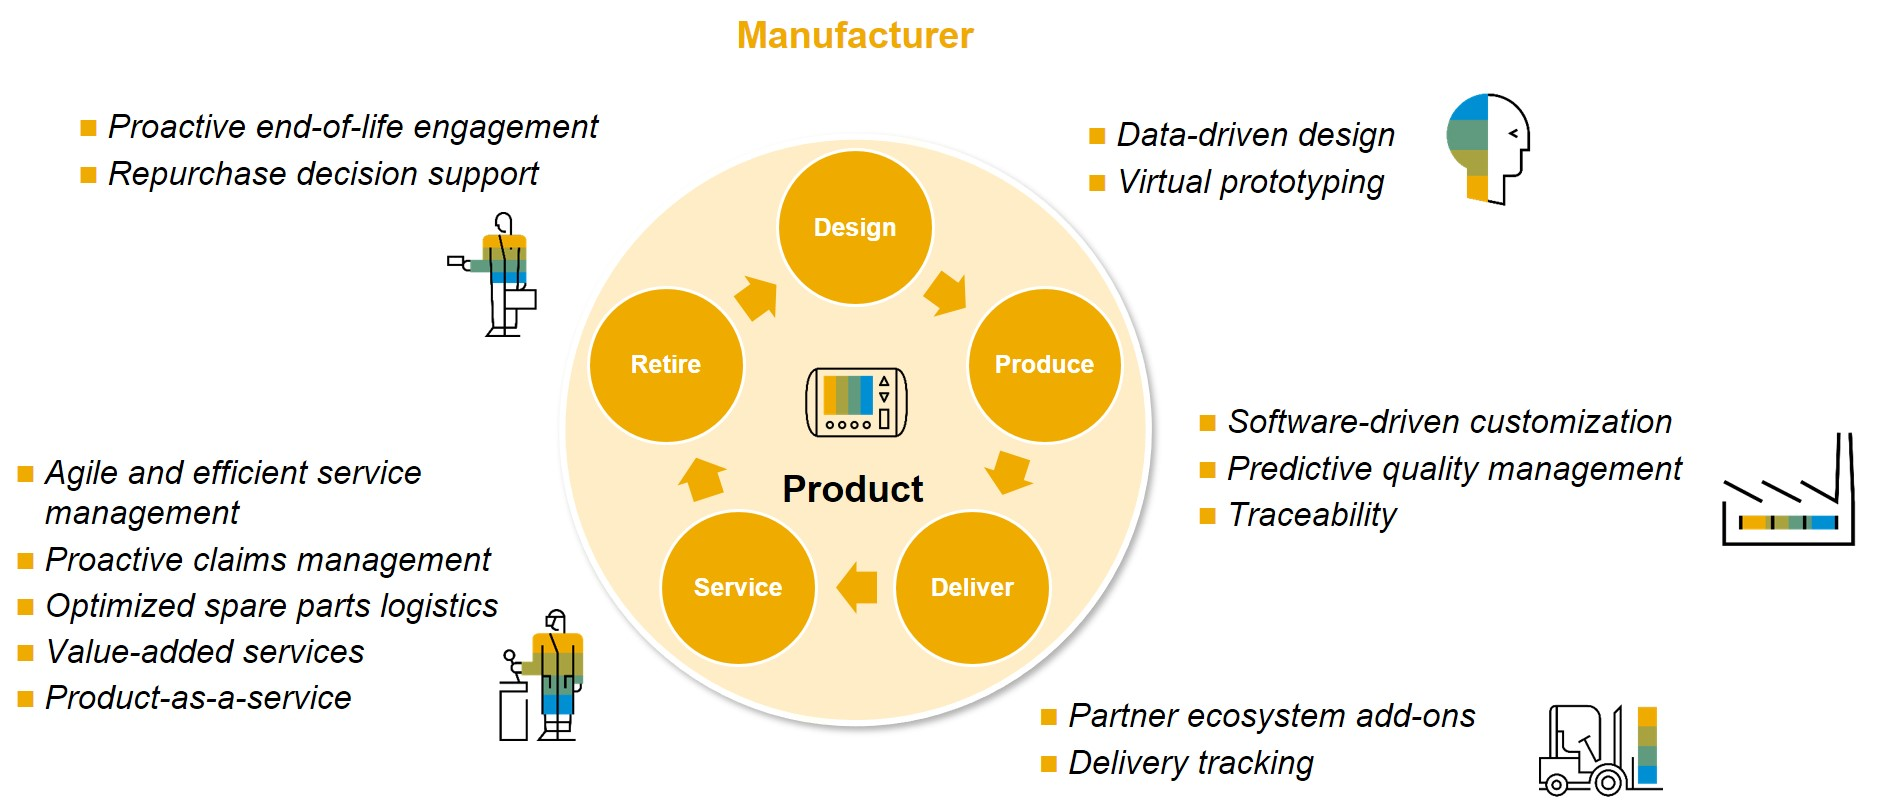 Digital twins and the internet of things iot sap blogs digital twins for connected products enable more reactive issue resolution with remote diagnostics the right resources service technicians tools pooptronica Image collections